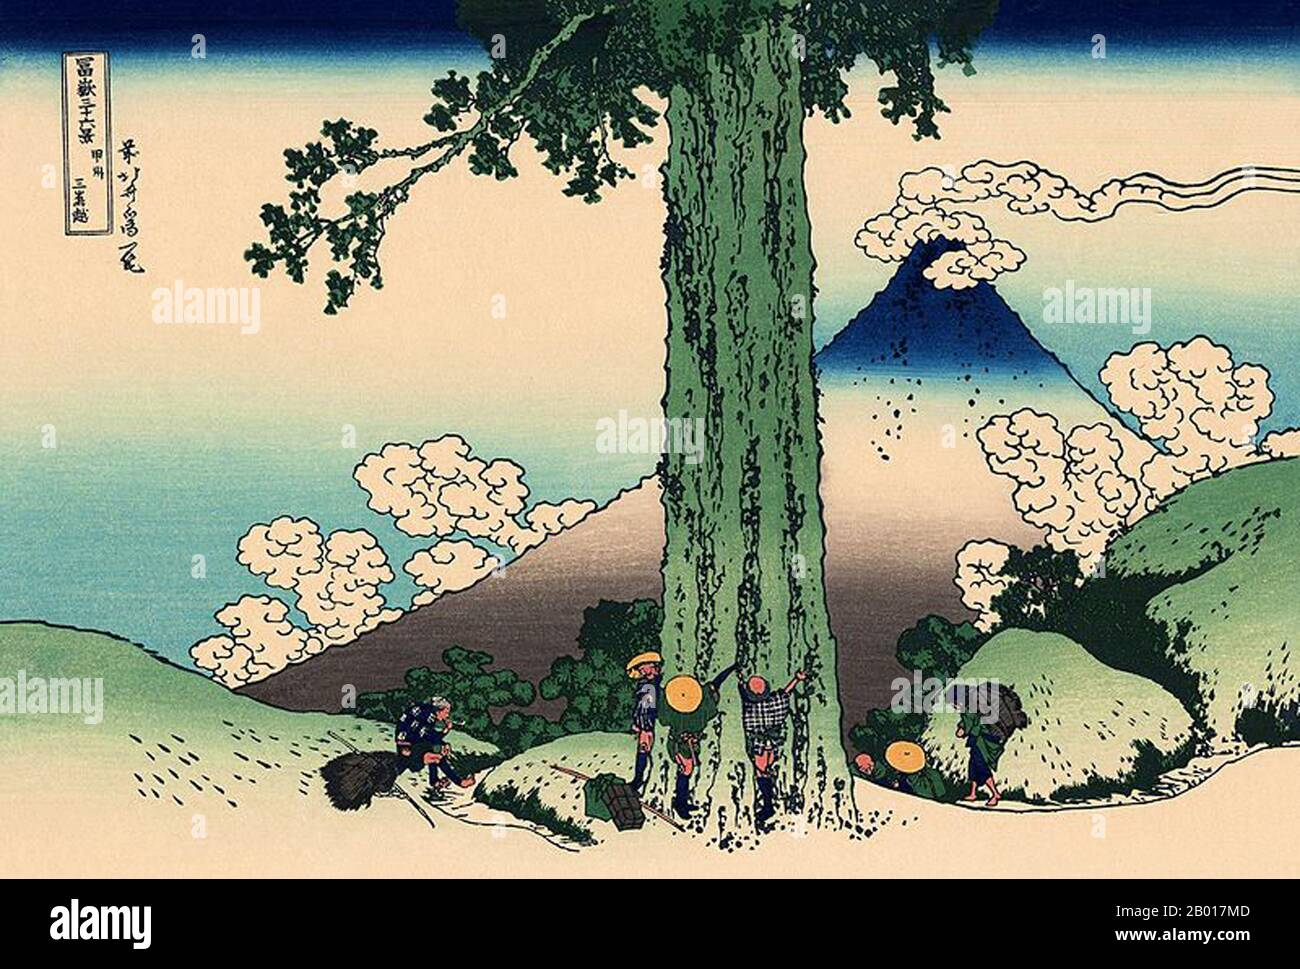 'Thirty-six Views of Mount Fuji' is an 'ukiyo-e' series of large, color woodblock prints by the Japanese artist Katsushika Hokusai (1760–1849). The series depicts Mount Fuji in differing seasons and weather conditions from a variety of places and distances. It actually consists of 46 prints created between 1826 and 1833. The first 36 were included in the original publication and, due to their popularity, 10 more were added after the original publication.  Mount Fuji is the highest mountain in Japan at 3,776 m (12,389 ft). An active stratovolcano that last erupted in 1707–08, Mount Fuji lies ab Stock Photo